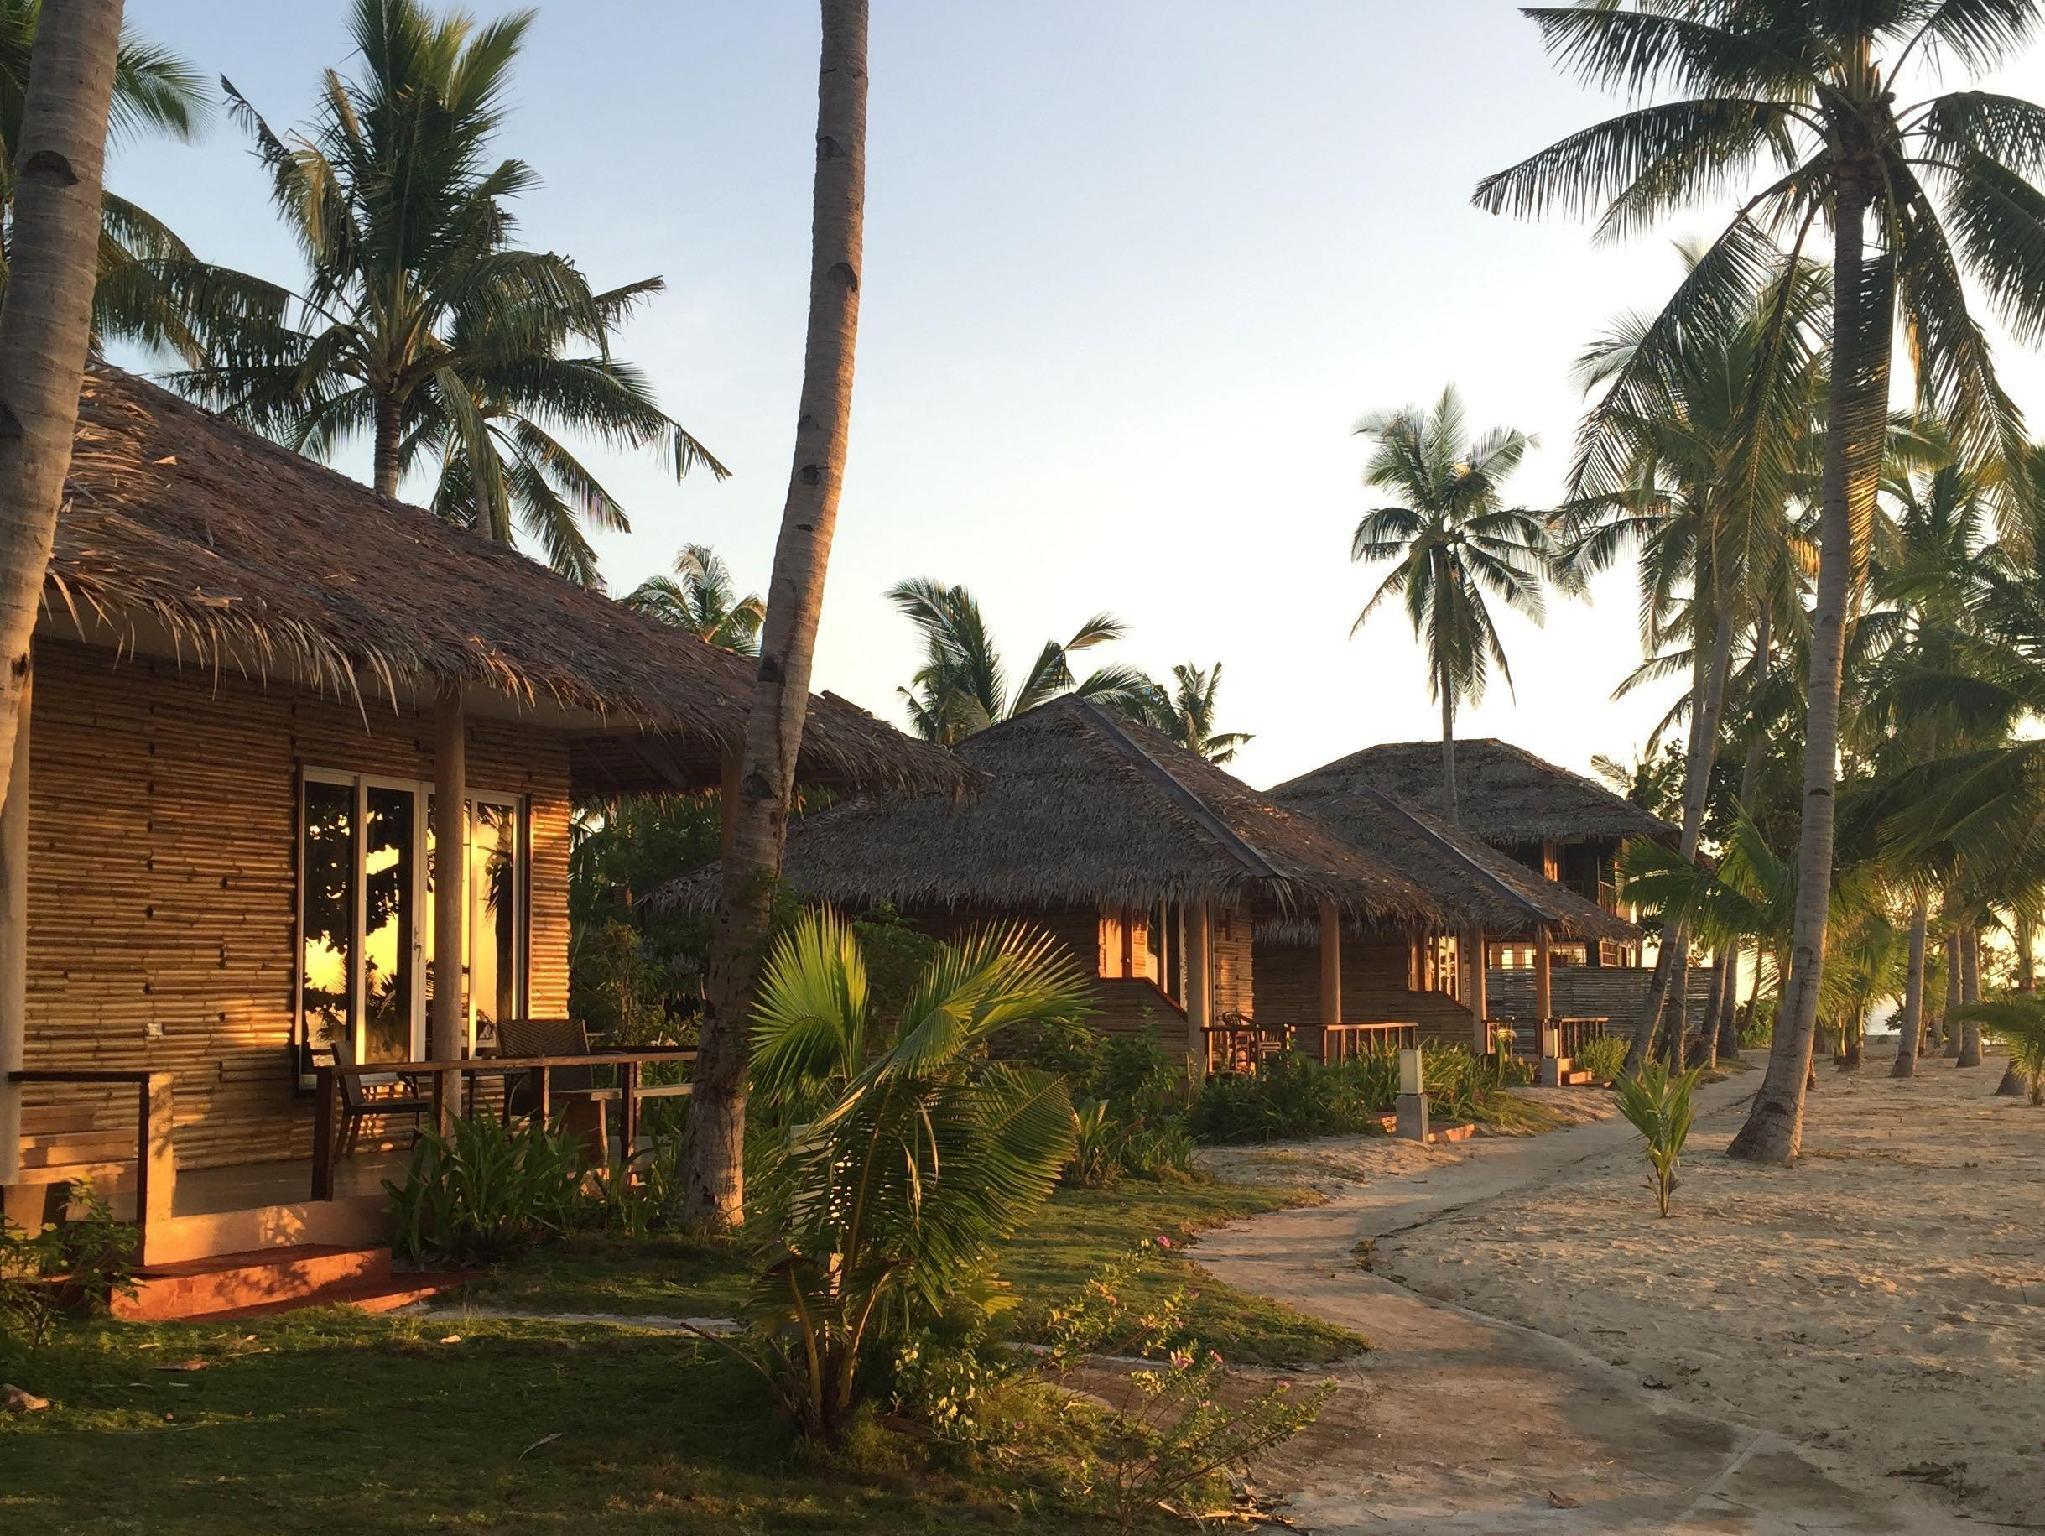 Kota Beach Resort 세부